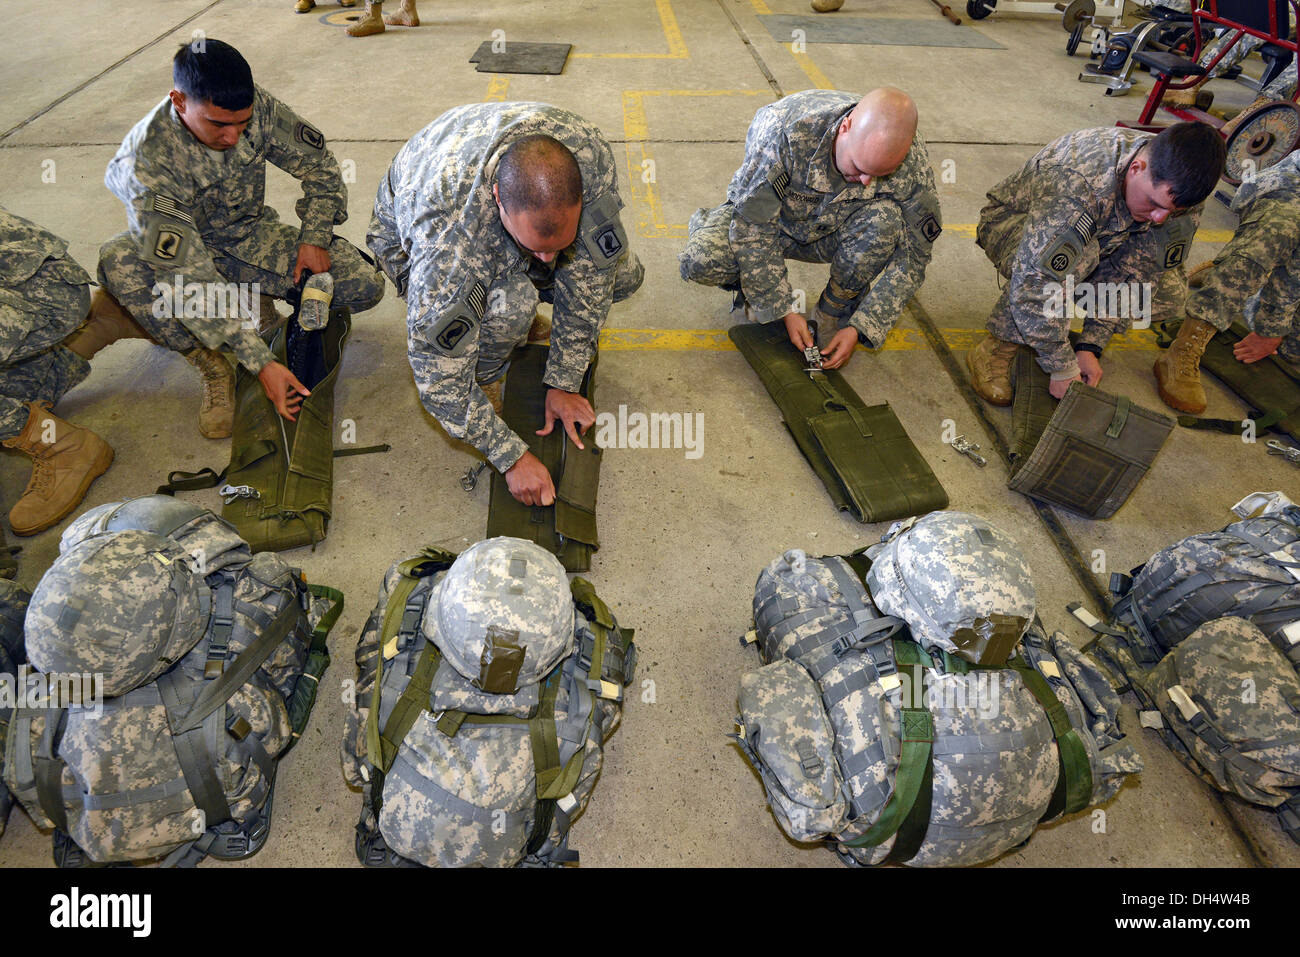 U.S. Army Soldiers, assigned to 173rd Infantry Brigade Combat Team (Airborne), prepare for a combat training jump Stock Photo